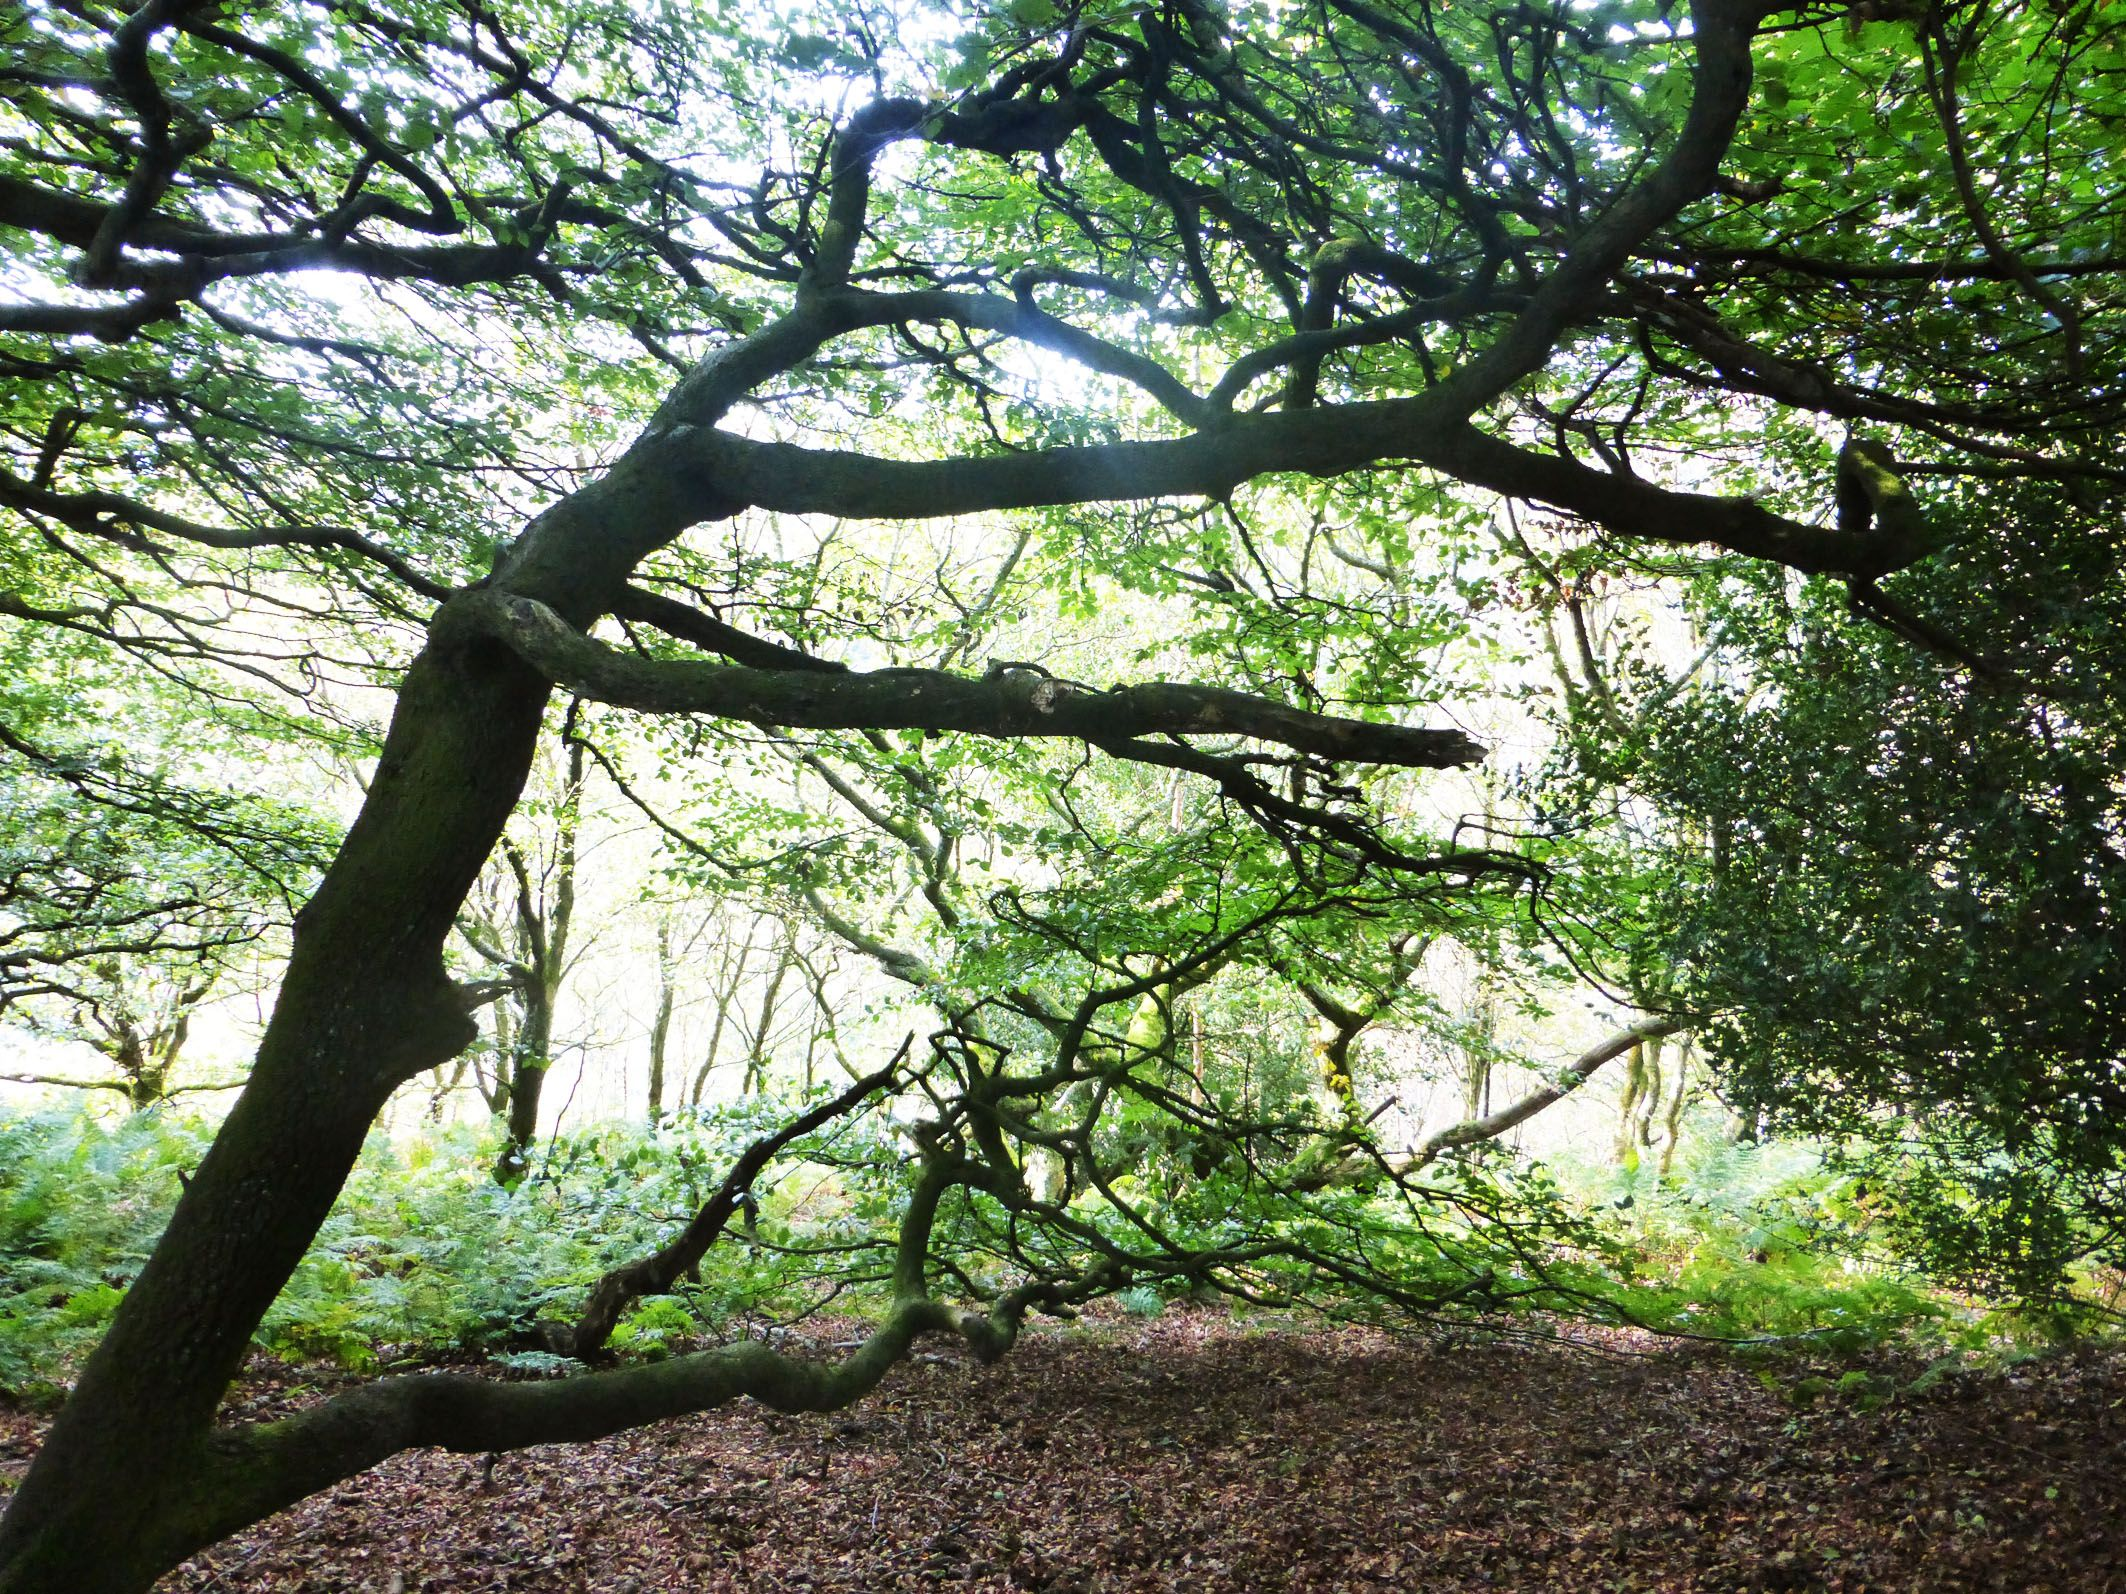 Twisted Trees, Horsehold Woods, autumn 2014